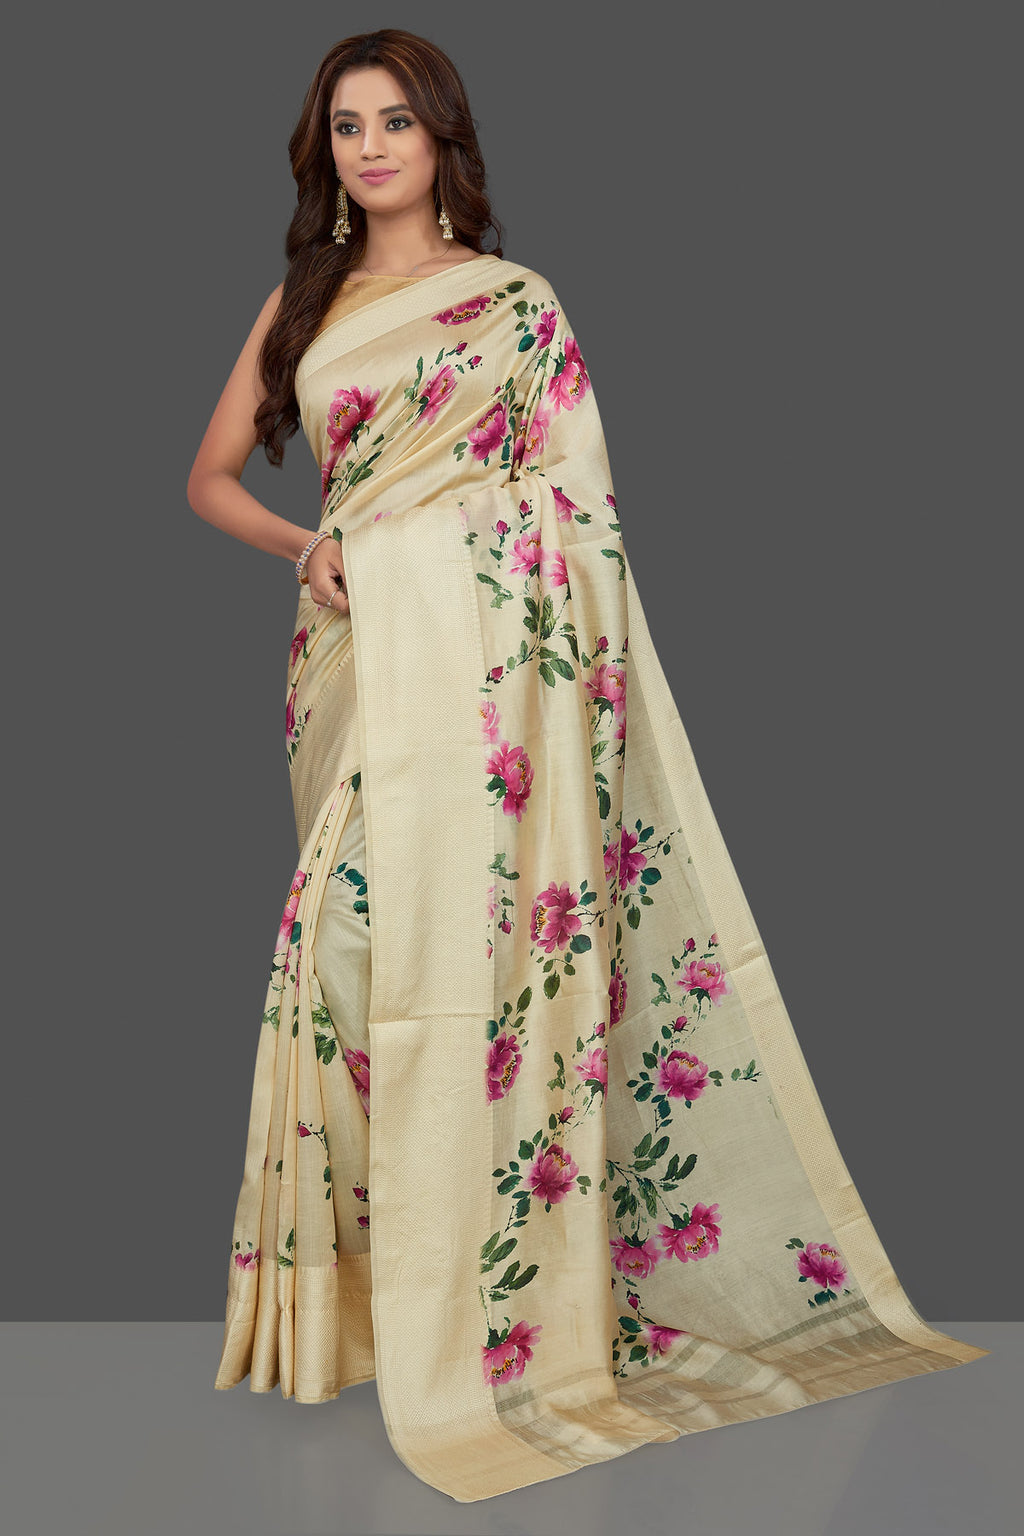 Buy beautiful cream floral print muga silk saree online in USA. Make you presence felt with your Indian style on special occasions in beautiful handloom sarees, pure silk sarees, muga silk saris, printed saris from Pure Elegance Indian fashion store in USA.-full view